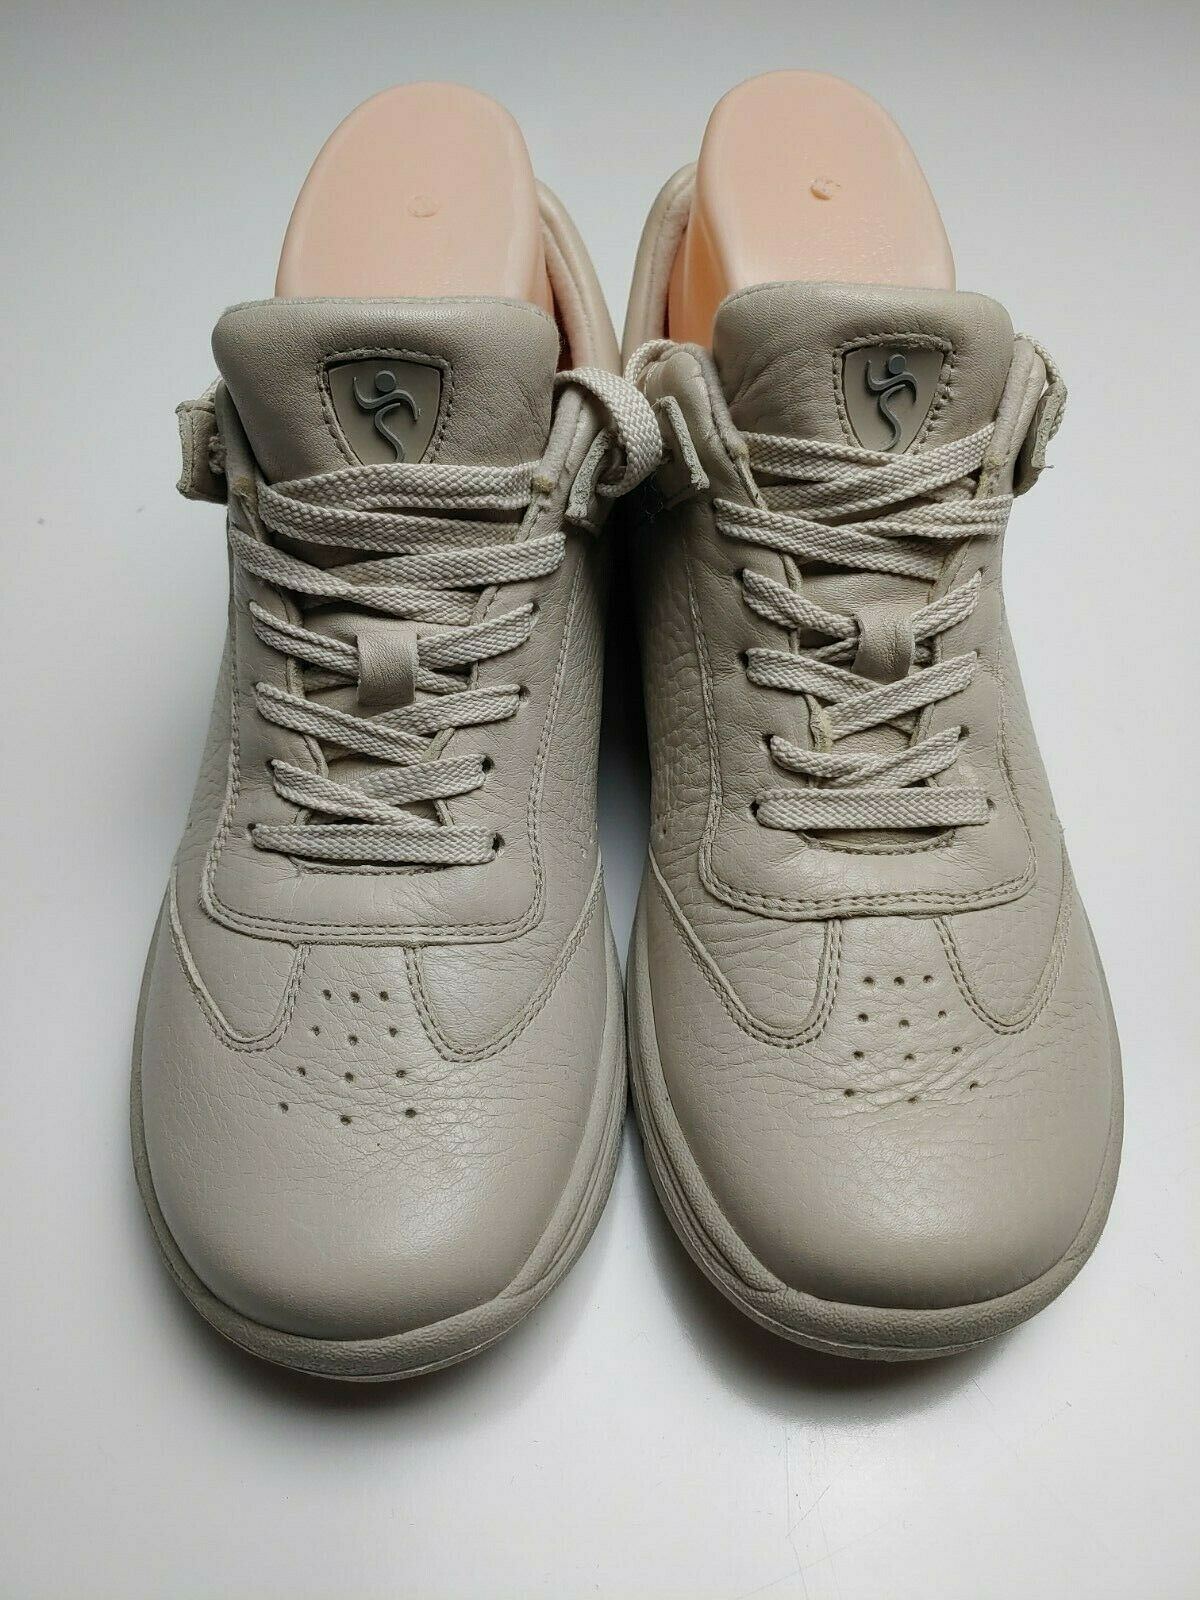 Supremes by Softspots Women's Tan Lace up Sneakers Size 9N